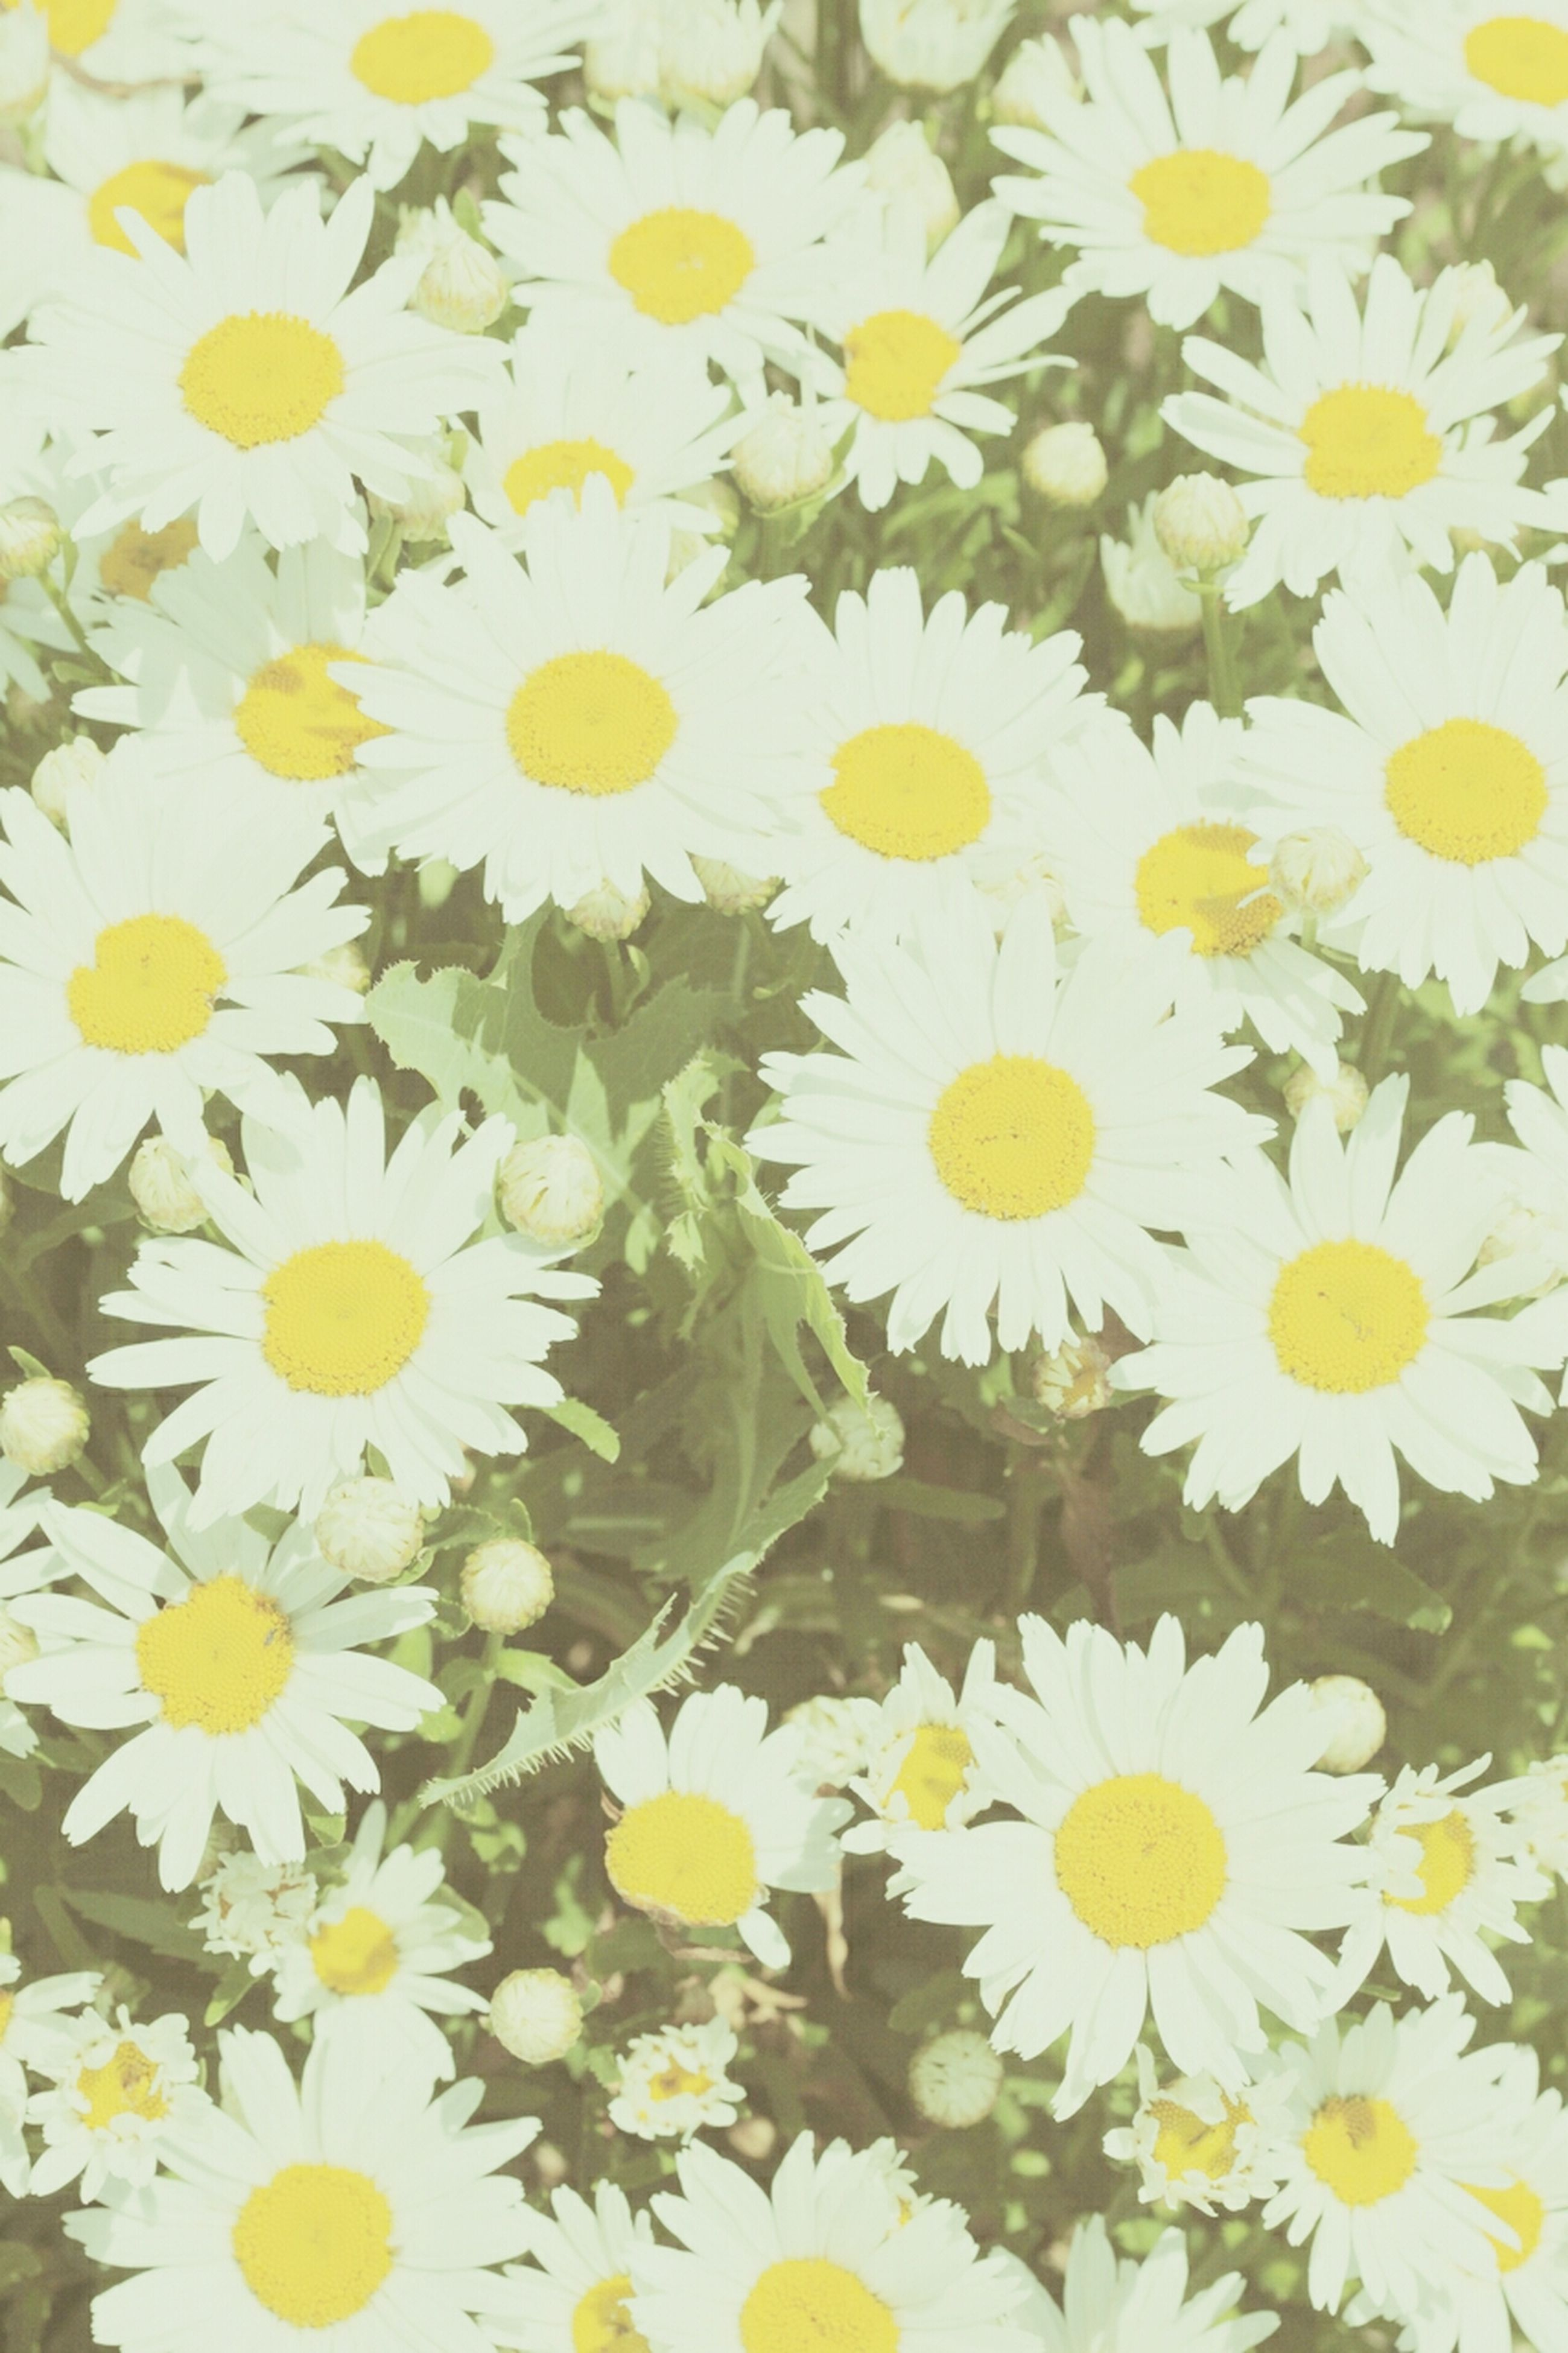 flower, petal, freshness, fragility, flower head, yellow, beauty in nature, growth, daisy, full frame, blooming, nature, backgrounds, white color, high angle view, plant, abundance, pollen, in bloom, close-up